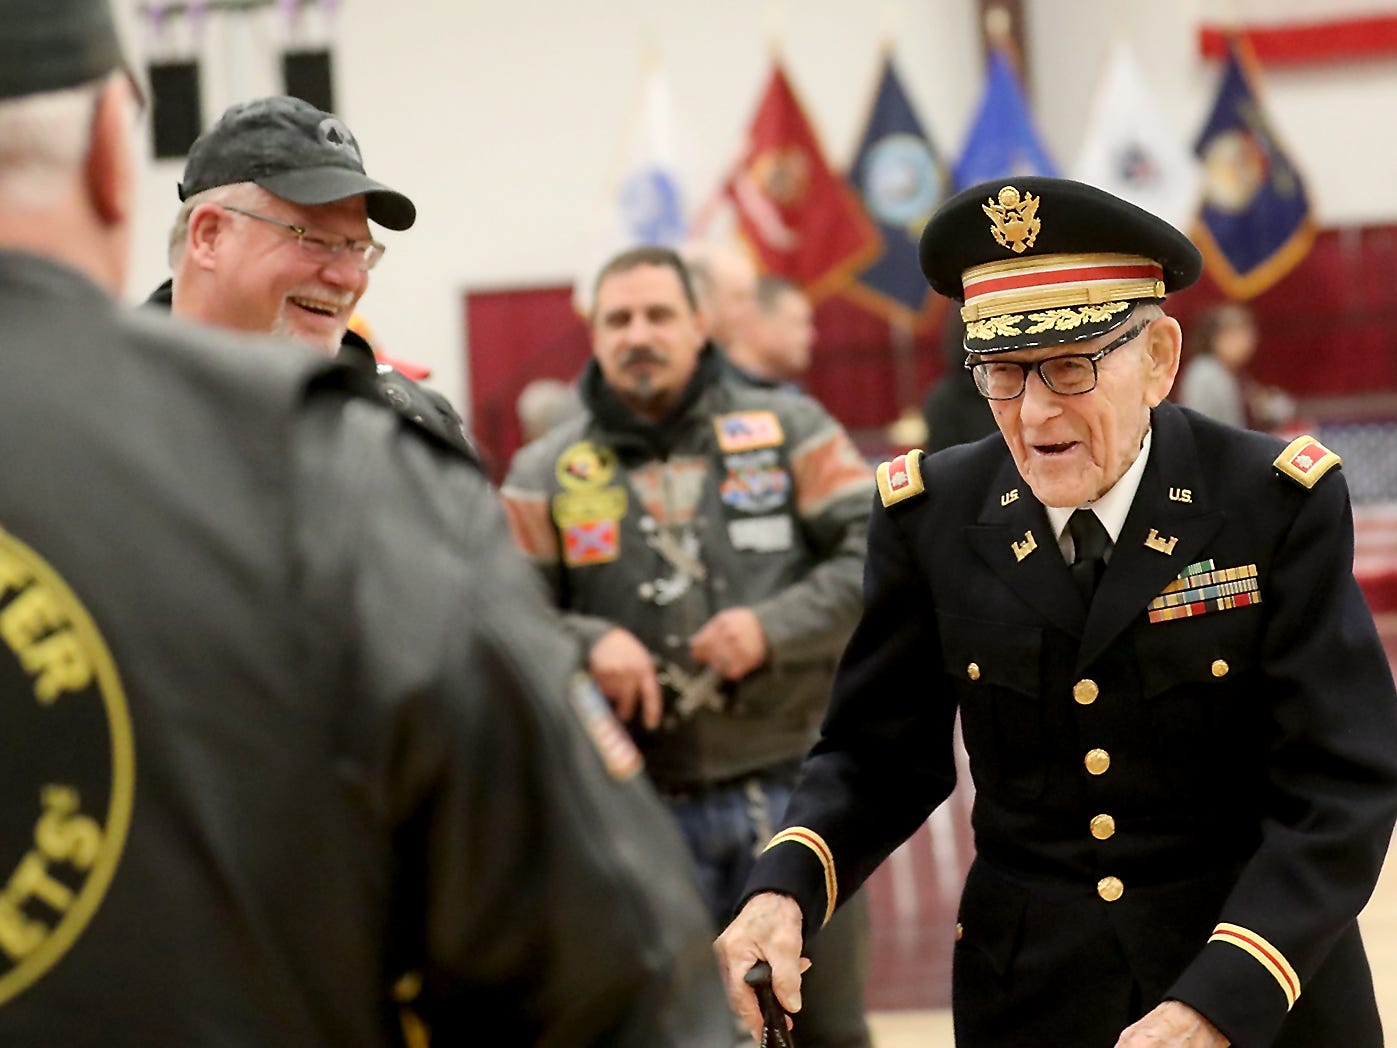 World War II Veteran Vernon Frykholm, shakes hands with attendees after the conclusion of the Honoring All Who Served Veterans Day ceremony at the Kitsap Sun Pavilion on Monday, November 12, 2018. Fyrkholm, who is 102-years-old resides in Sequim.